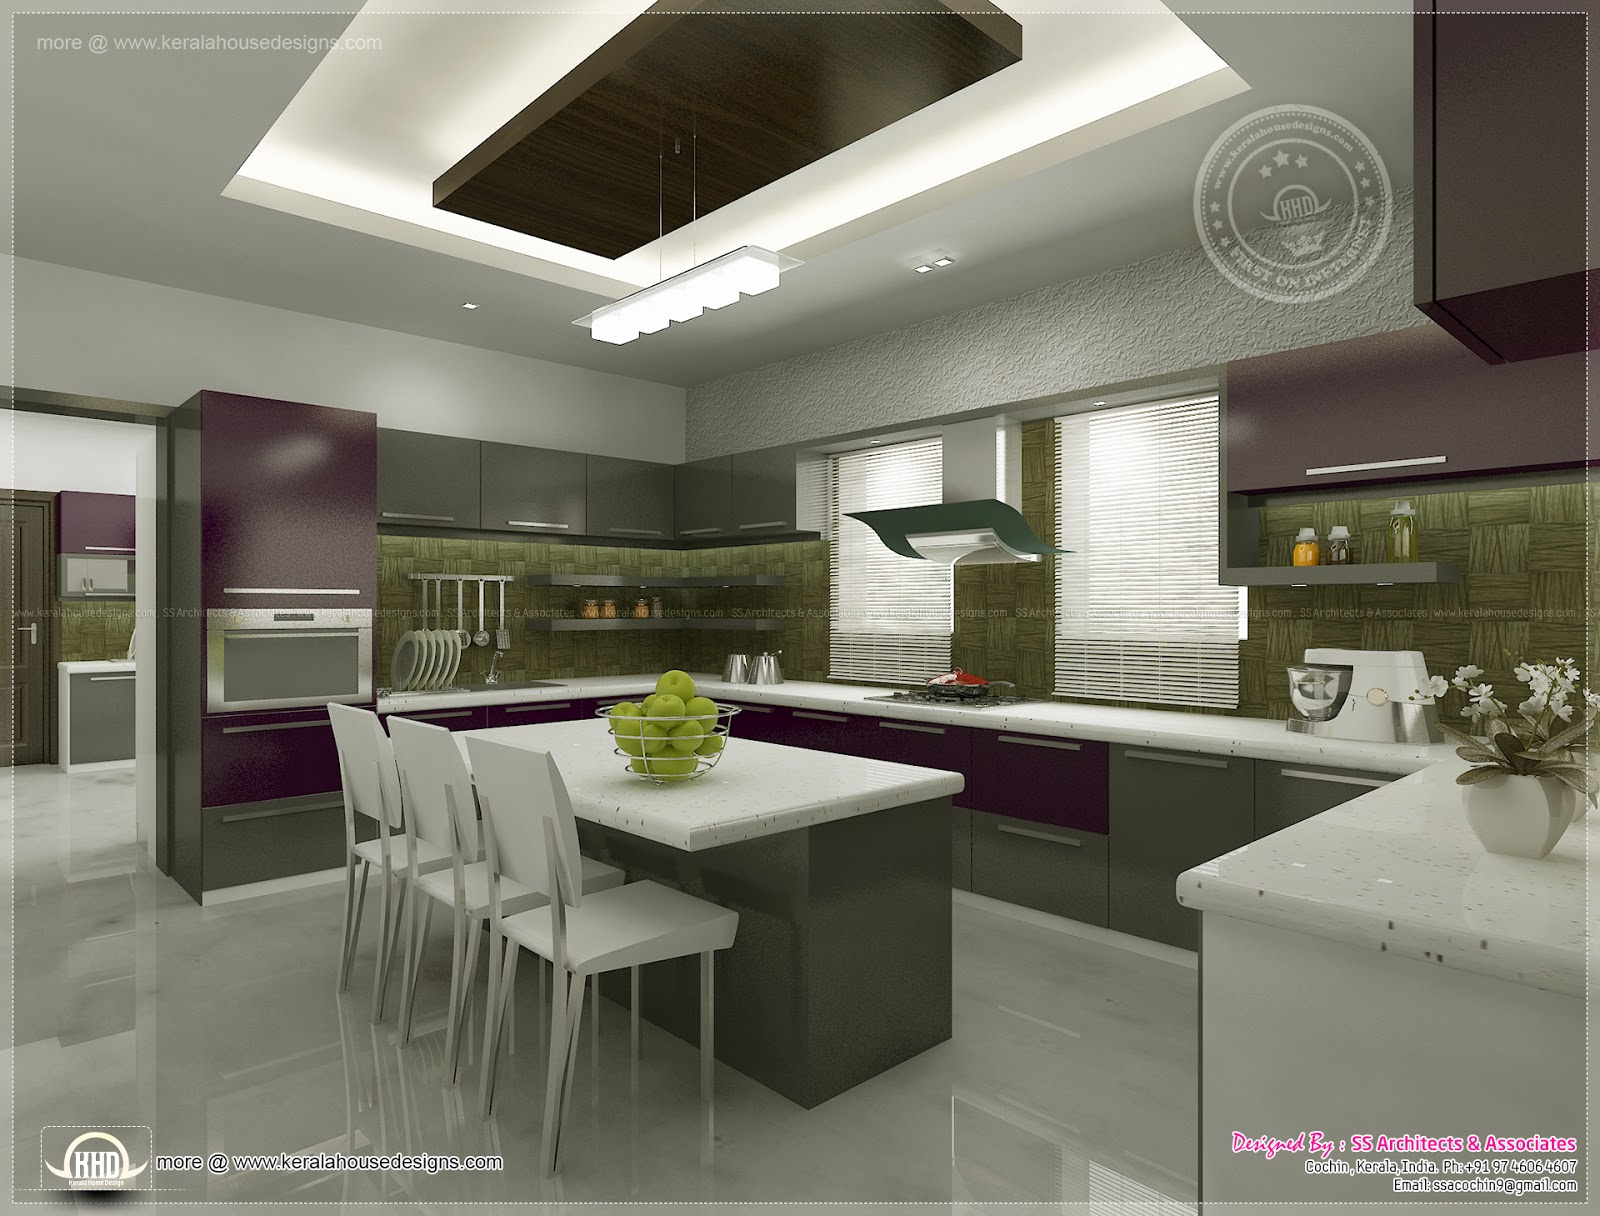 Kitchen Interior Views By Ss Architects Cochin Kerala